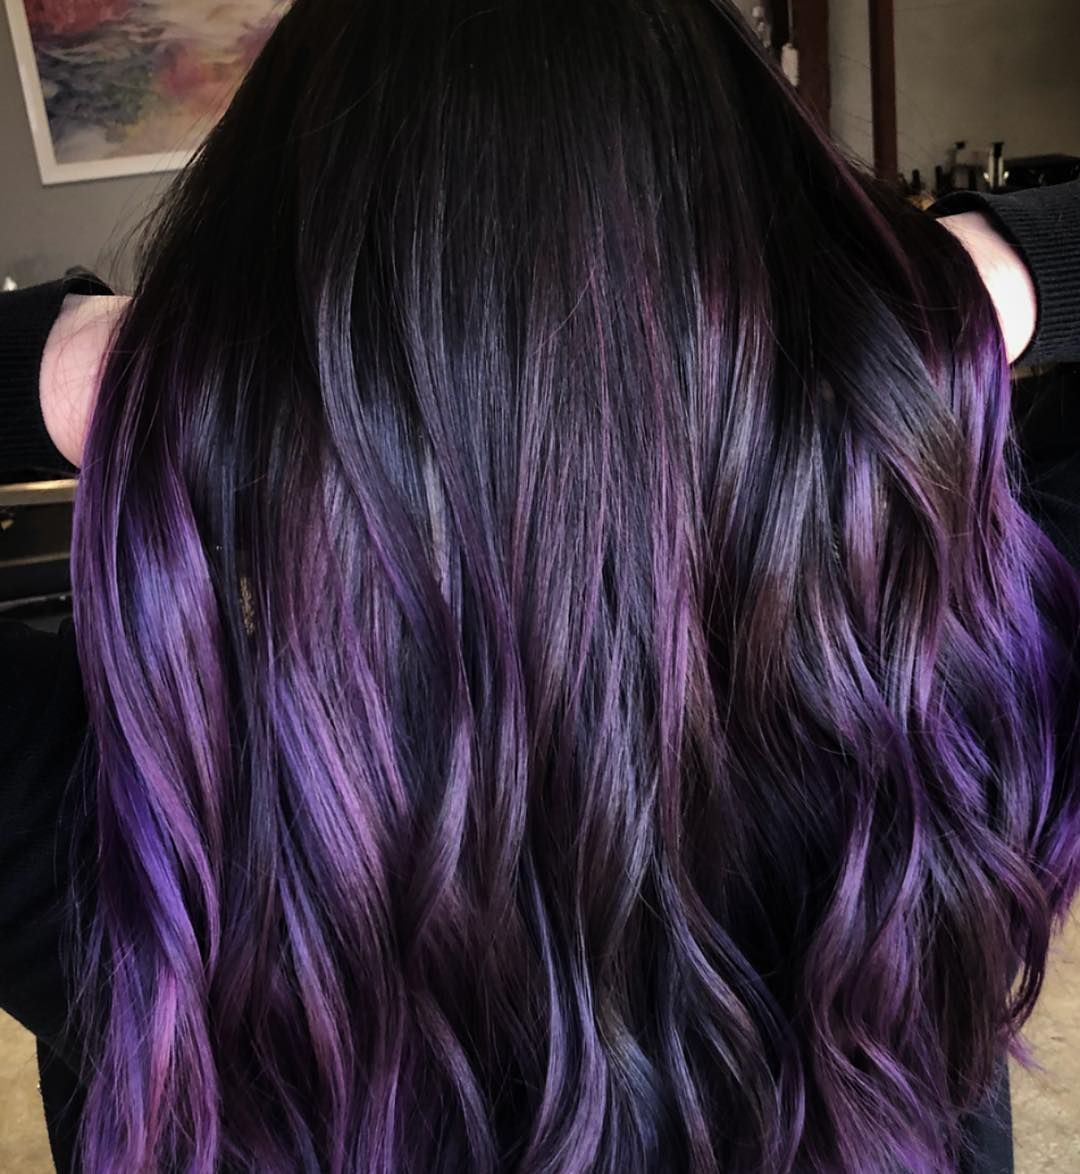 Color Styles For Long Hair: This Blackberry Dye Job Is The Perfect Spring Hair-Color